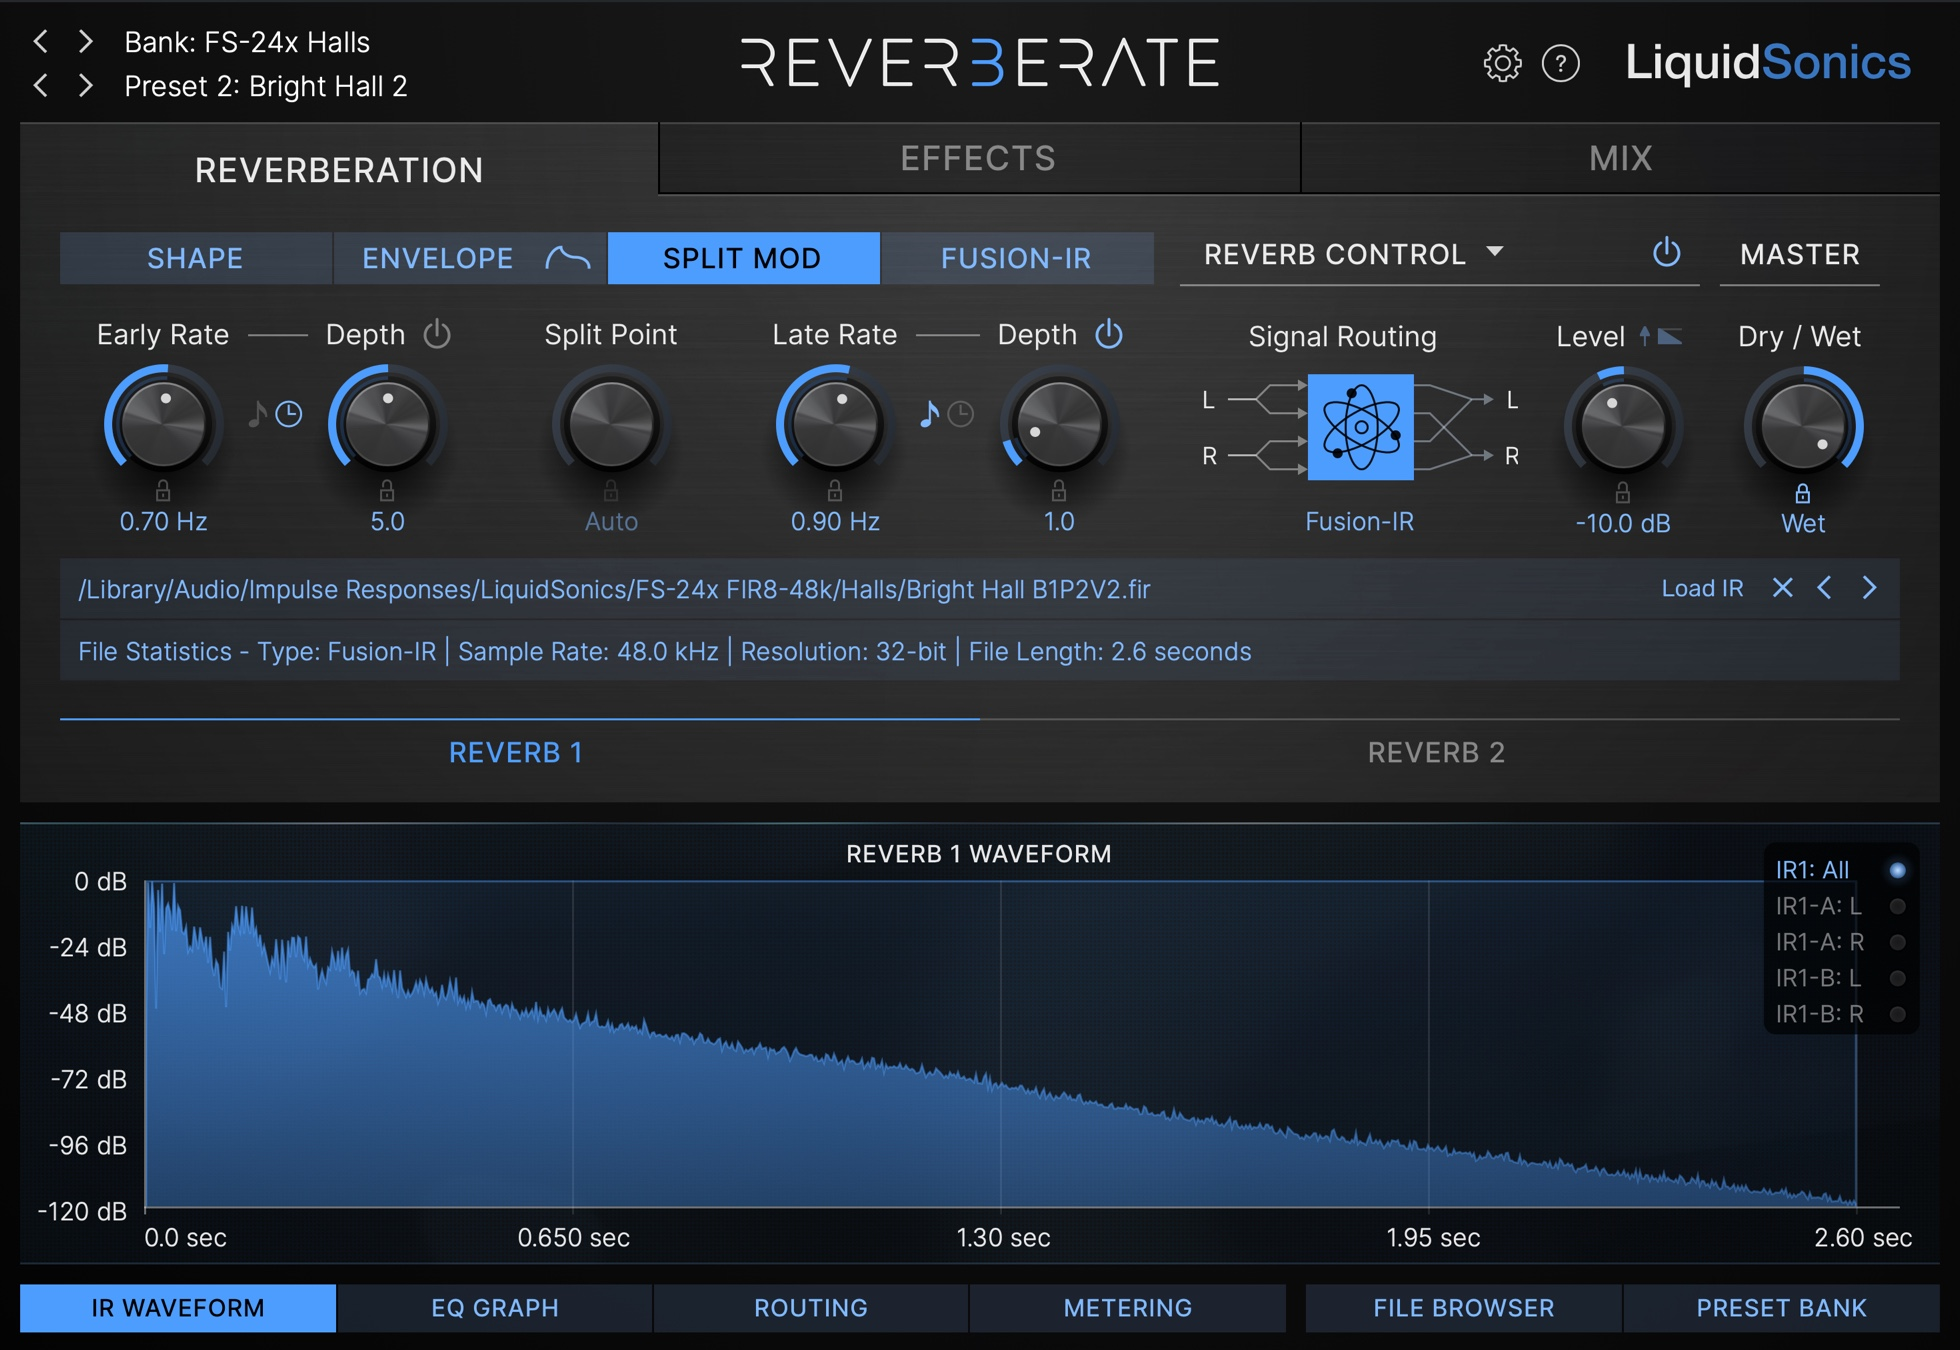 Reverberate 3 Split Mod 24x